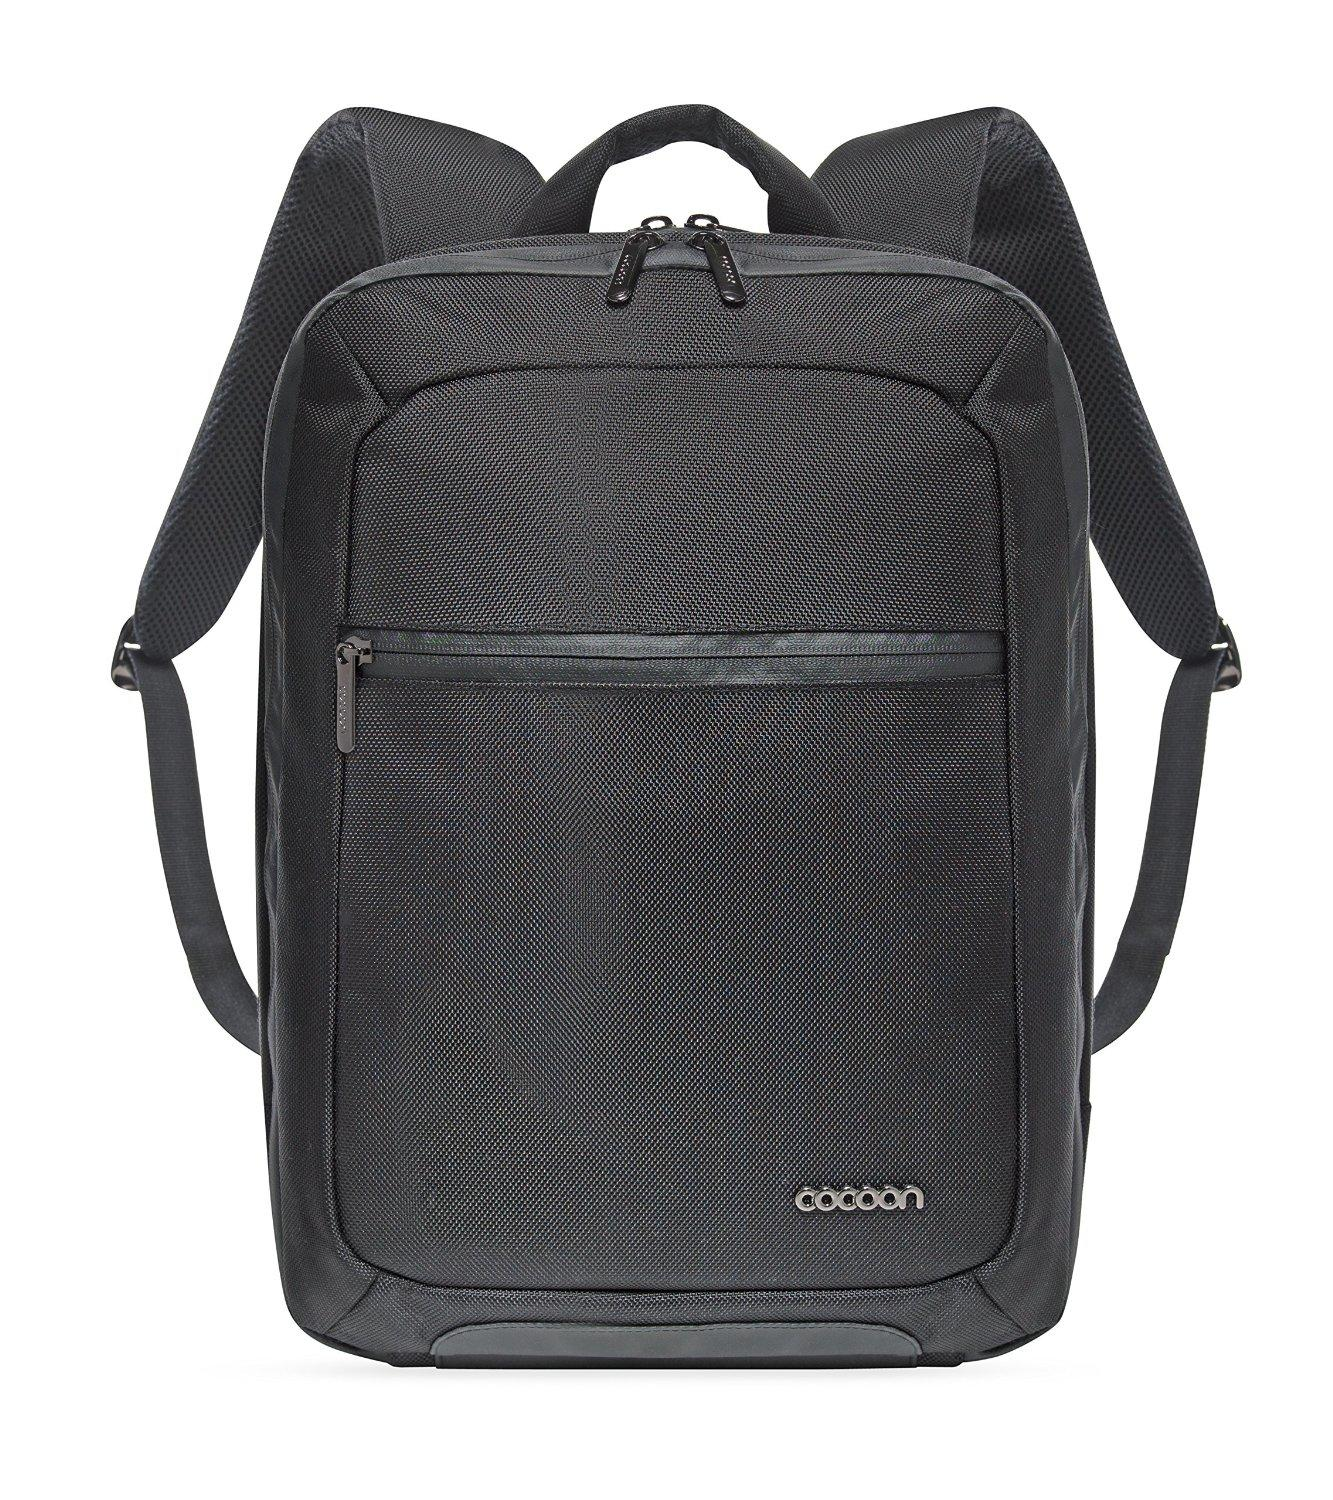 "Cocoon SLIM Backpack for up to 15"" MacBook Pro"